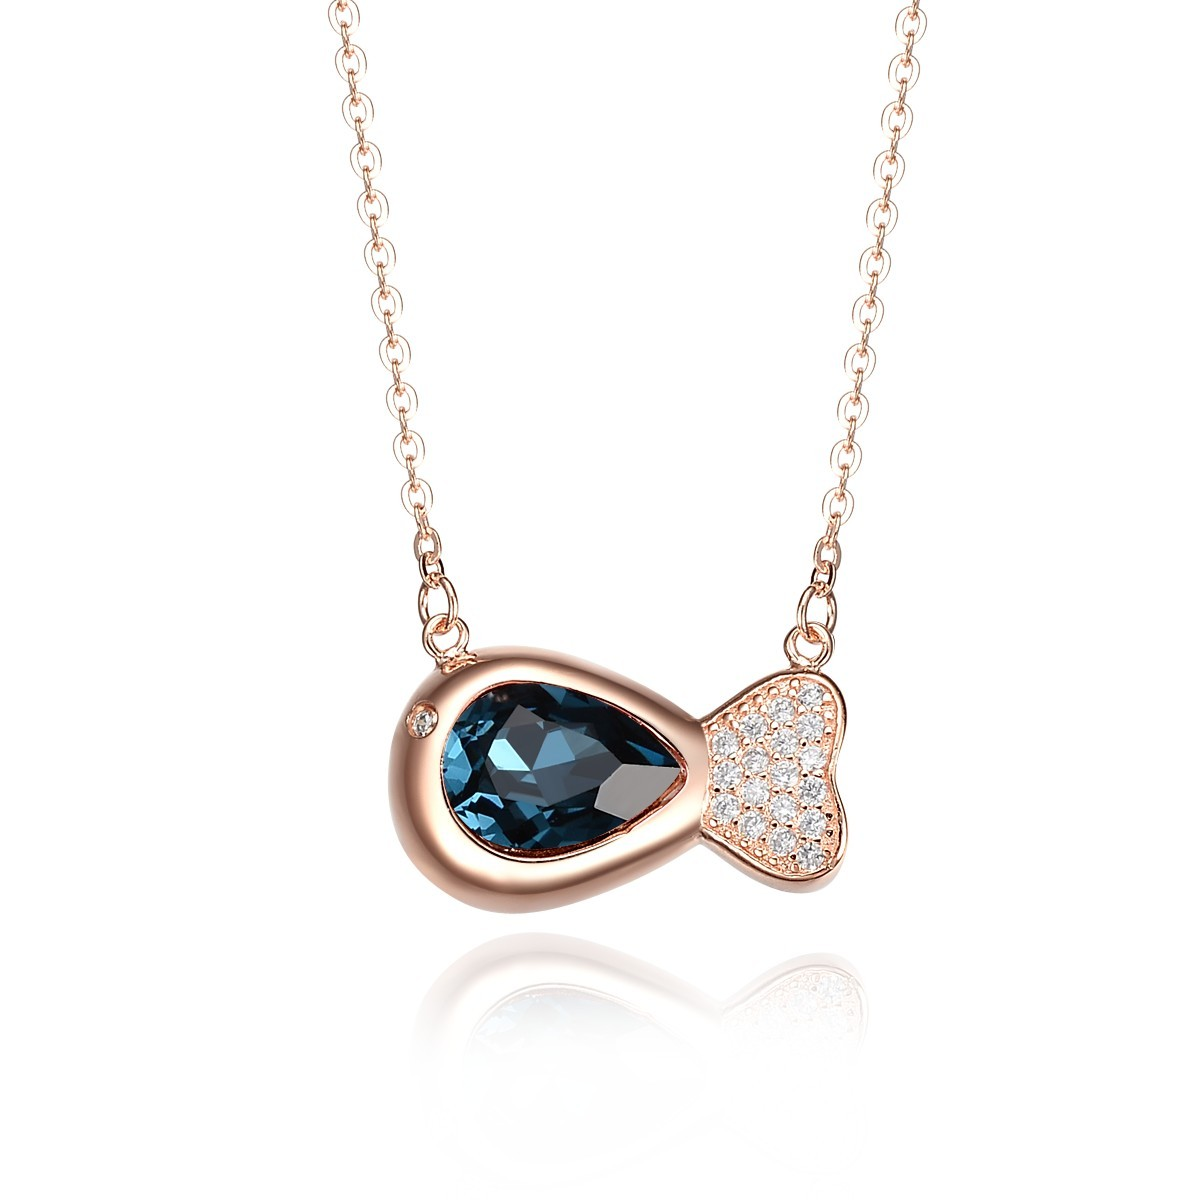 pendant blueheart necklace value product heart jewelry crystal blue fashion elegant